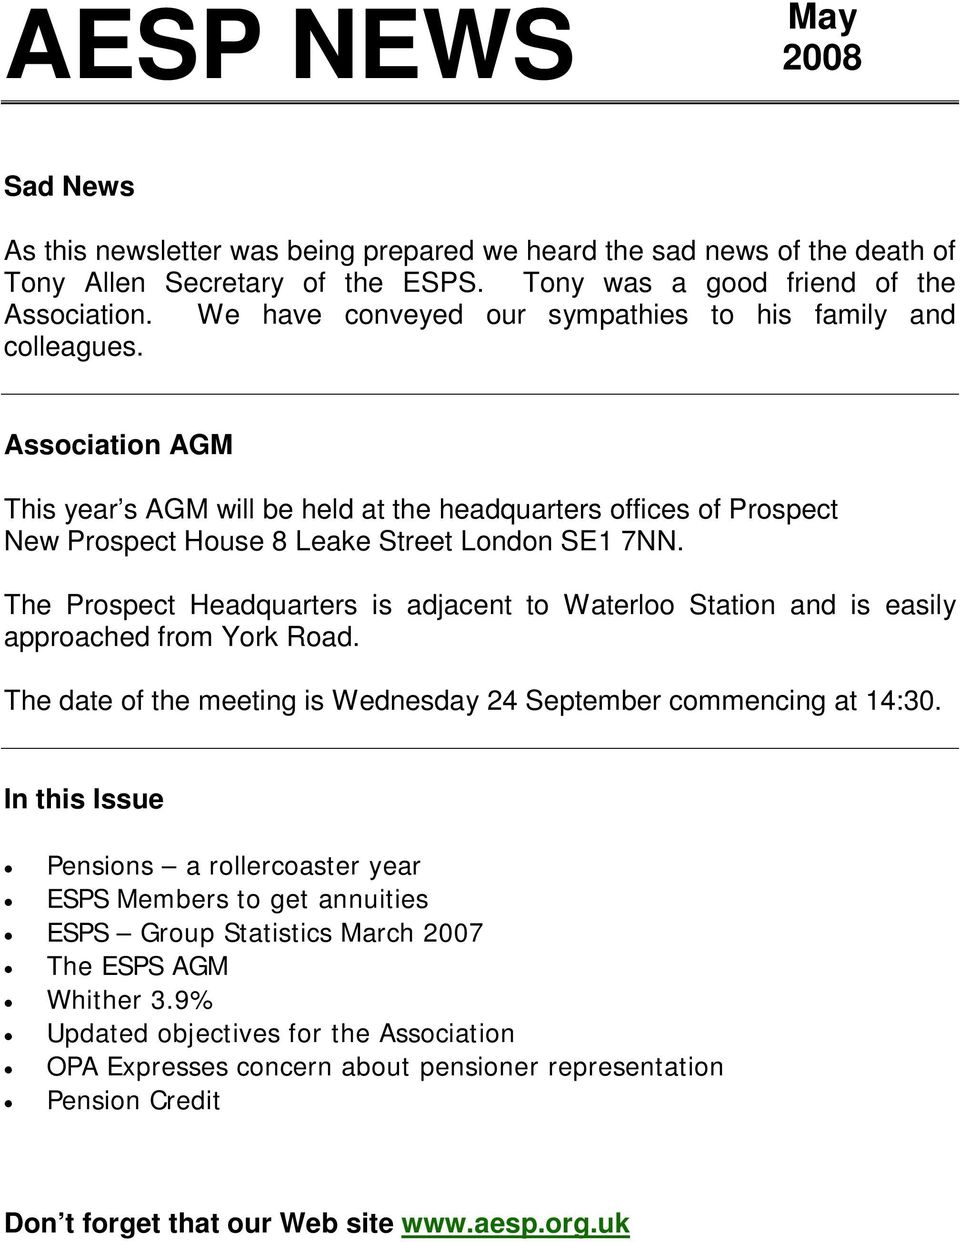 The Prospect Headquarters is adjacent to Waterloo Station and is easily approached from York Road. The date of the meeting is Wednesday 24 September commencing at 14:30.